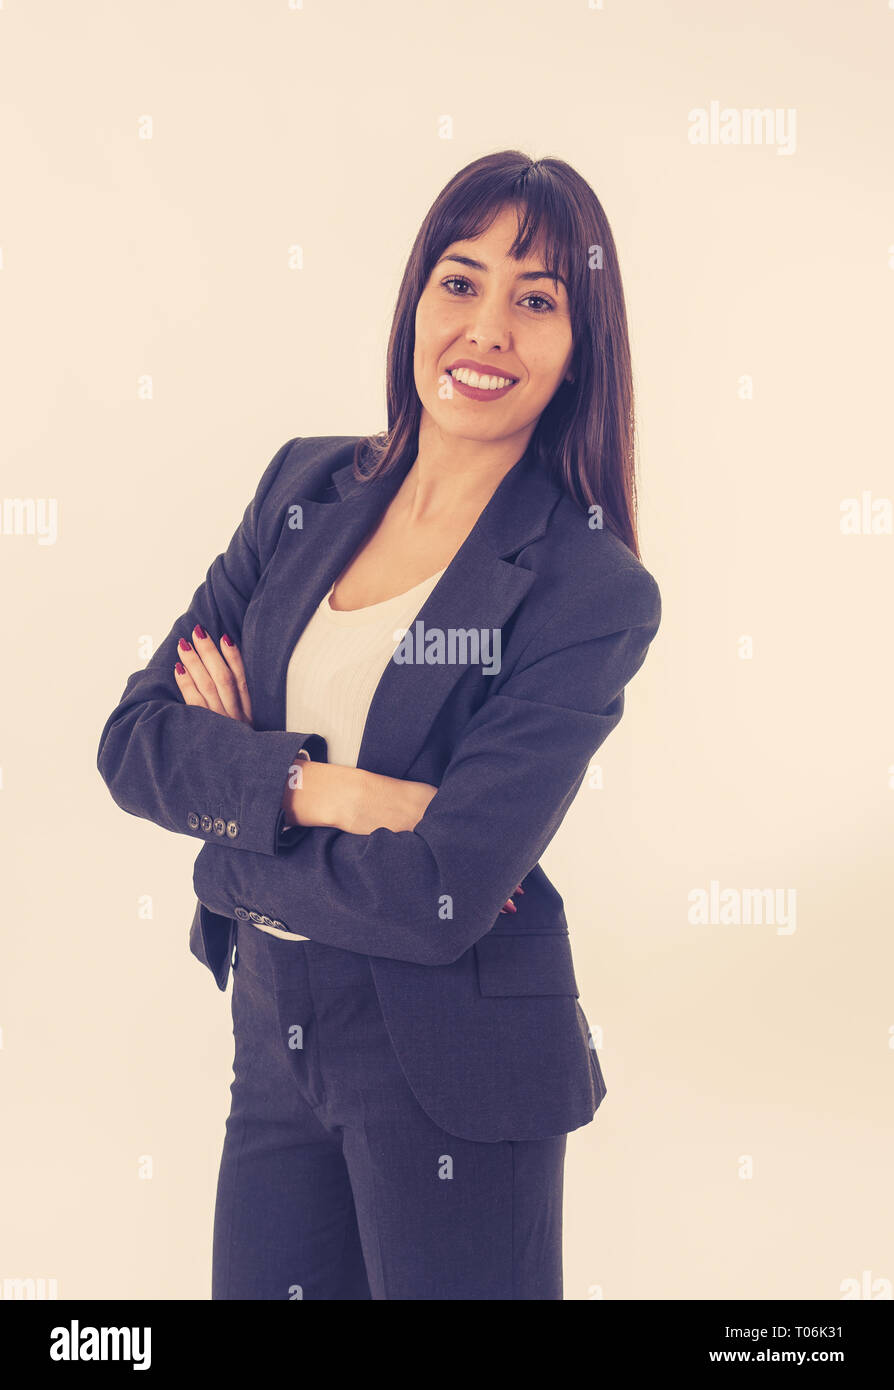 Full length portrait of young beautiful successful businesswoman smiling. Isolated on neutral background. In people, corporate business education, suc Stock Photo